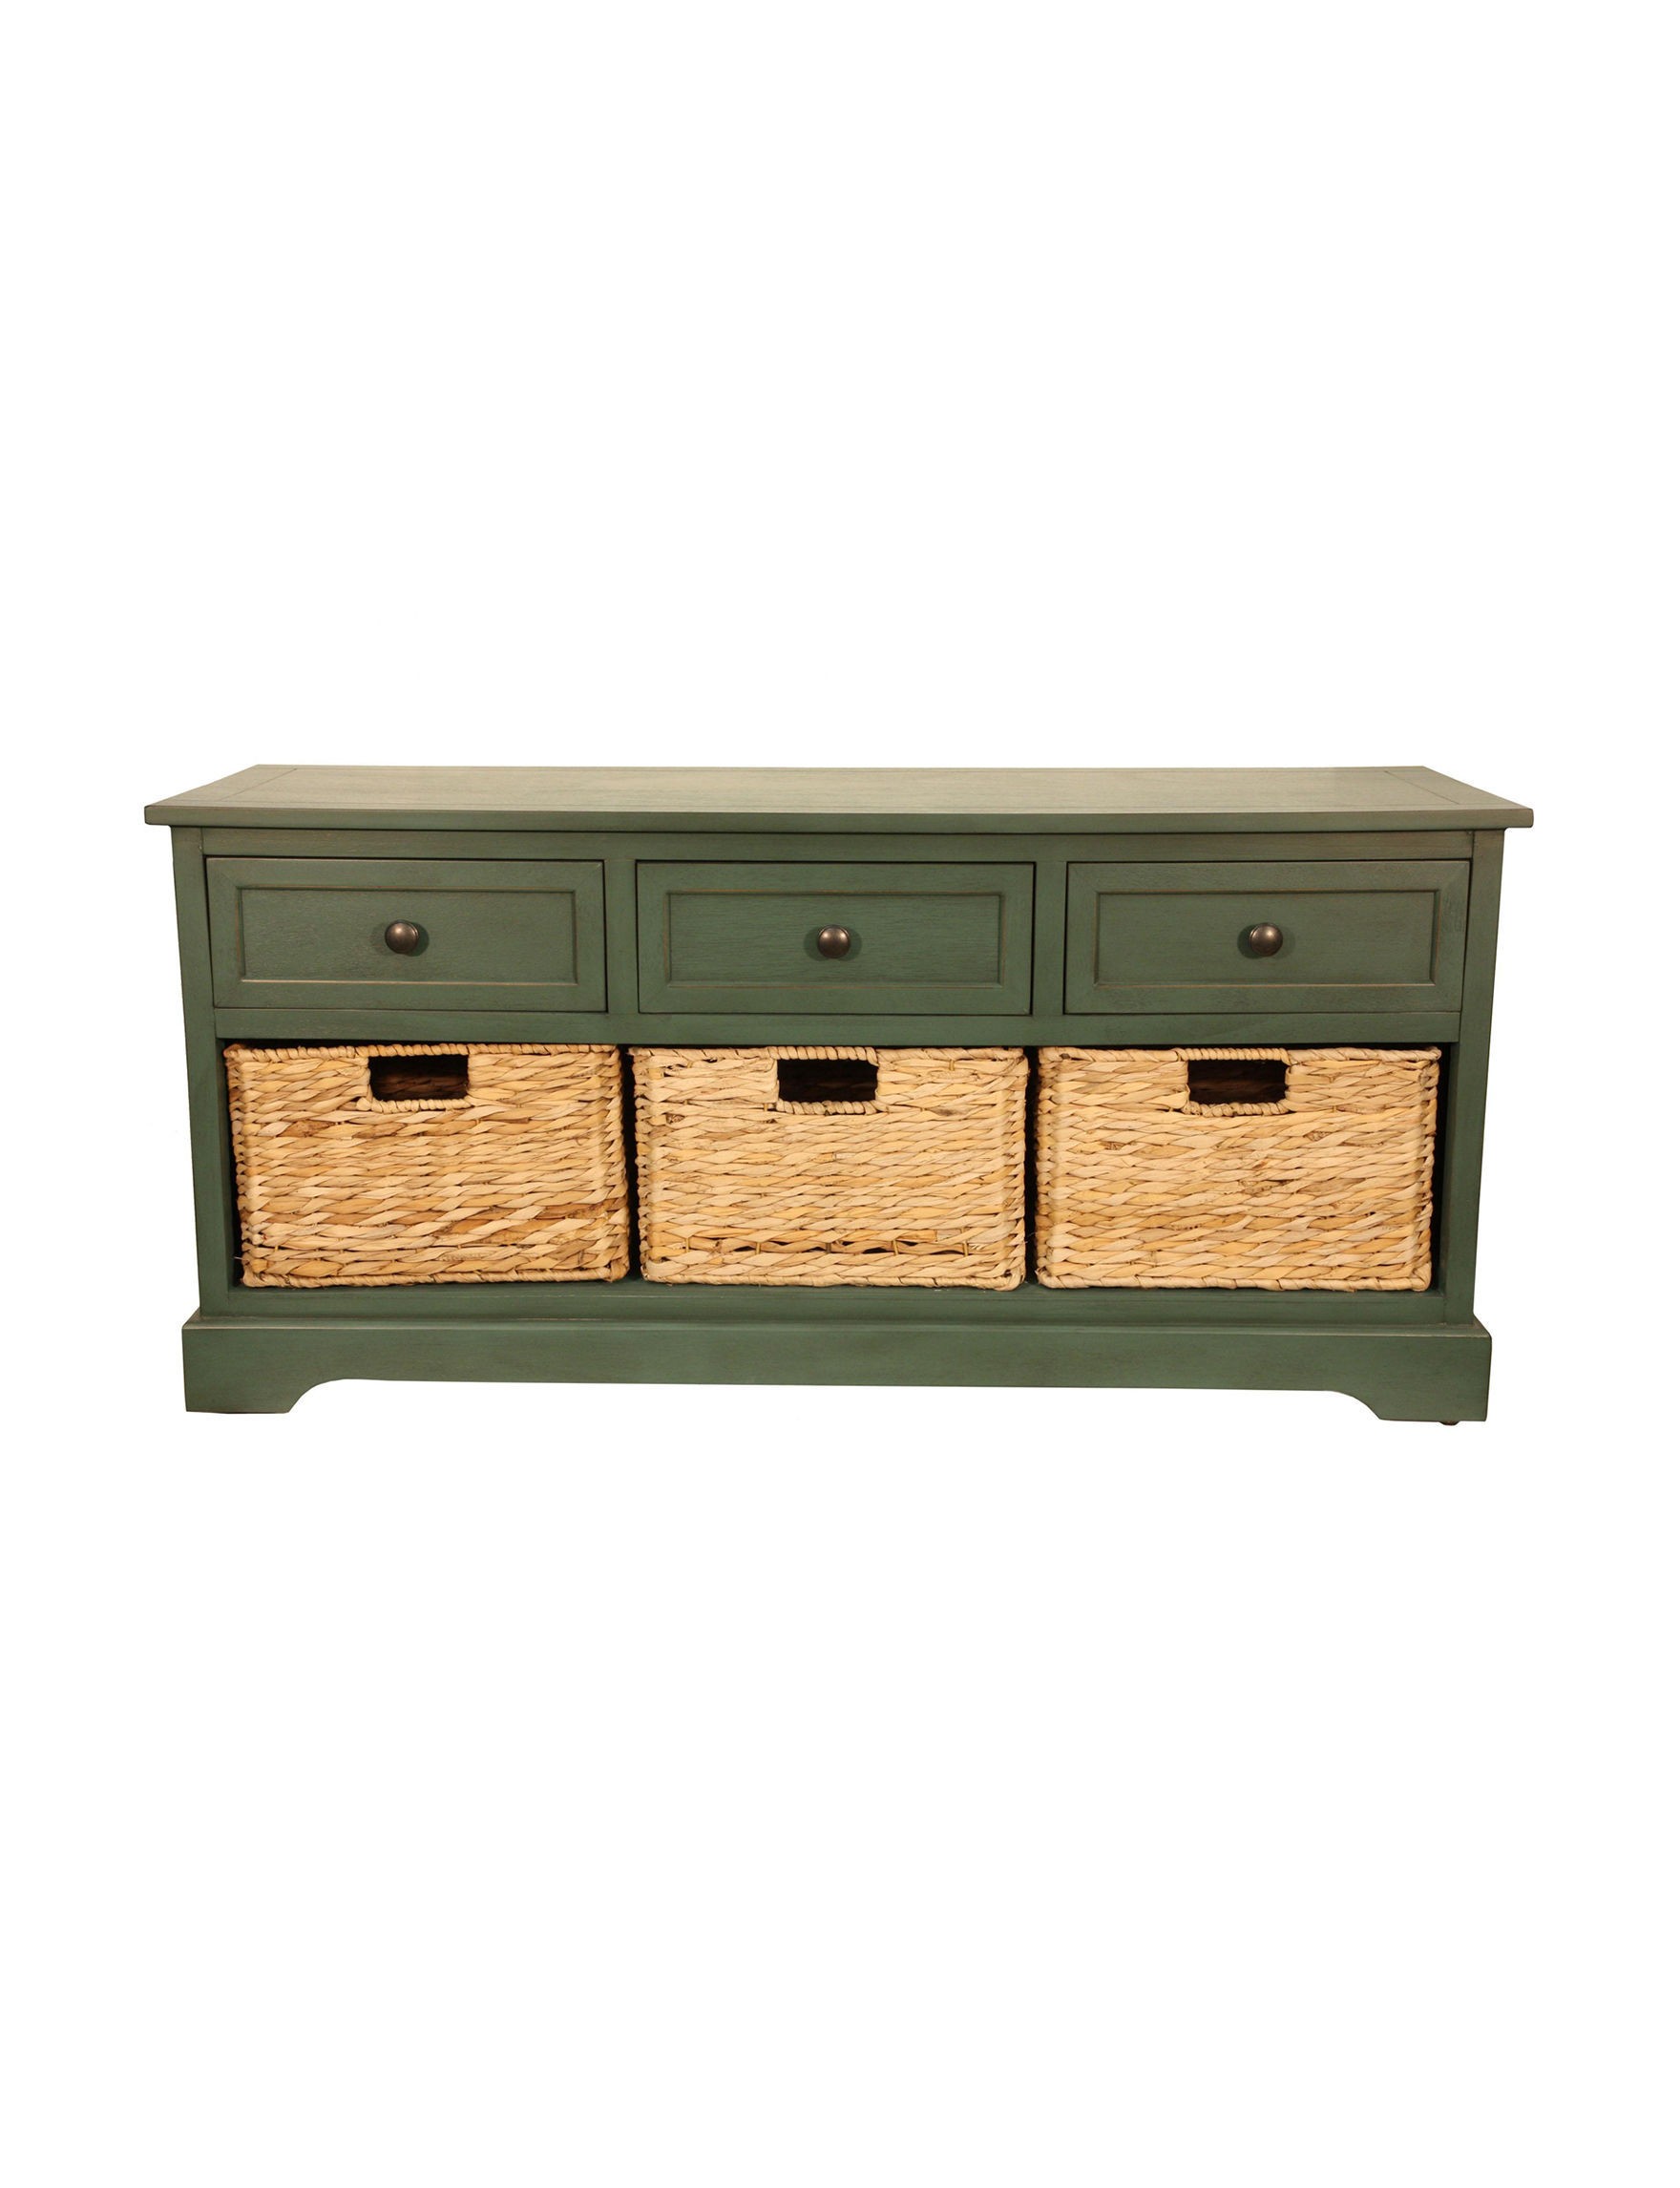 Decor Therapy Green Ottomans & Benches Bedroom Furniture Entryway Furniture Home Office Furniture Living Room Furniture